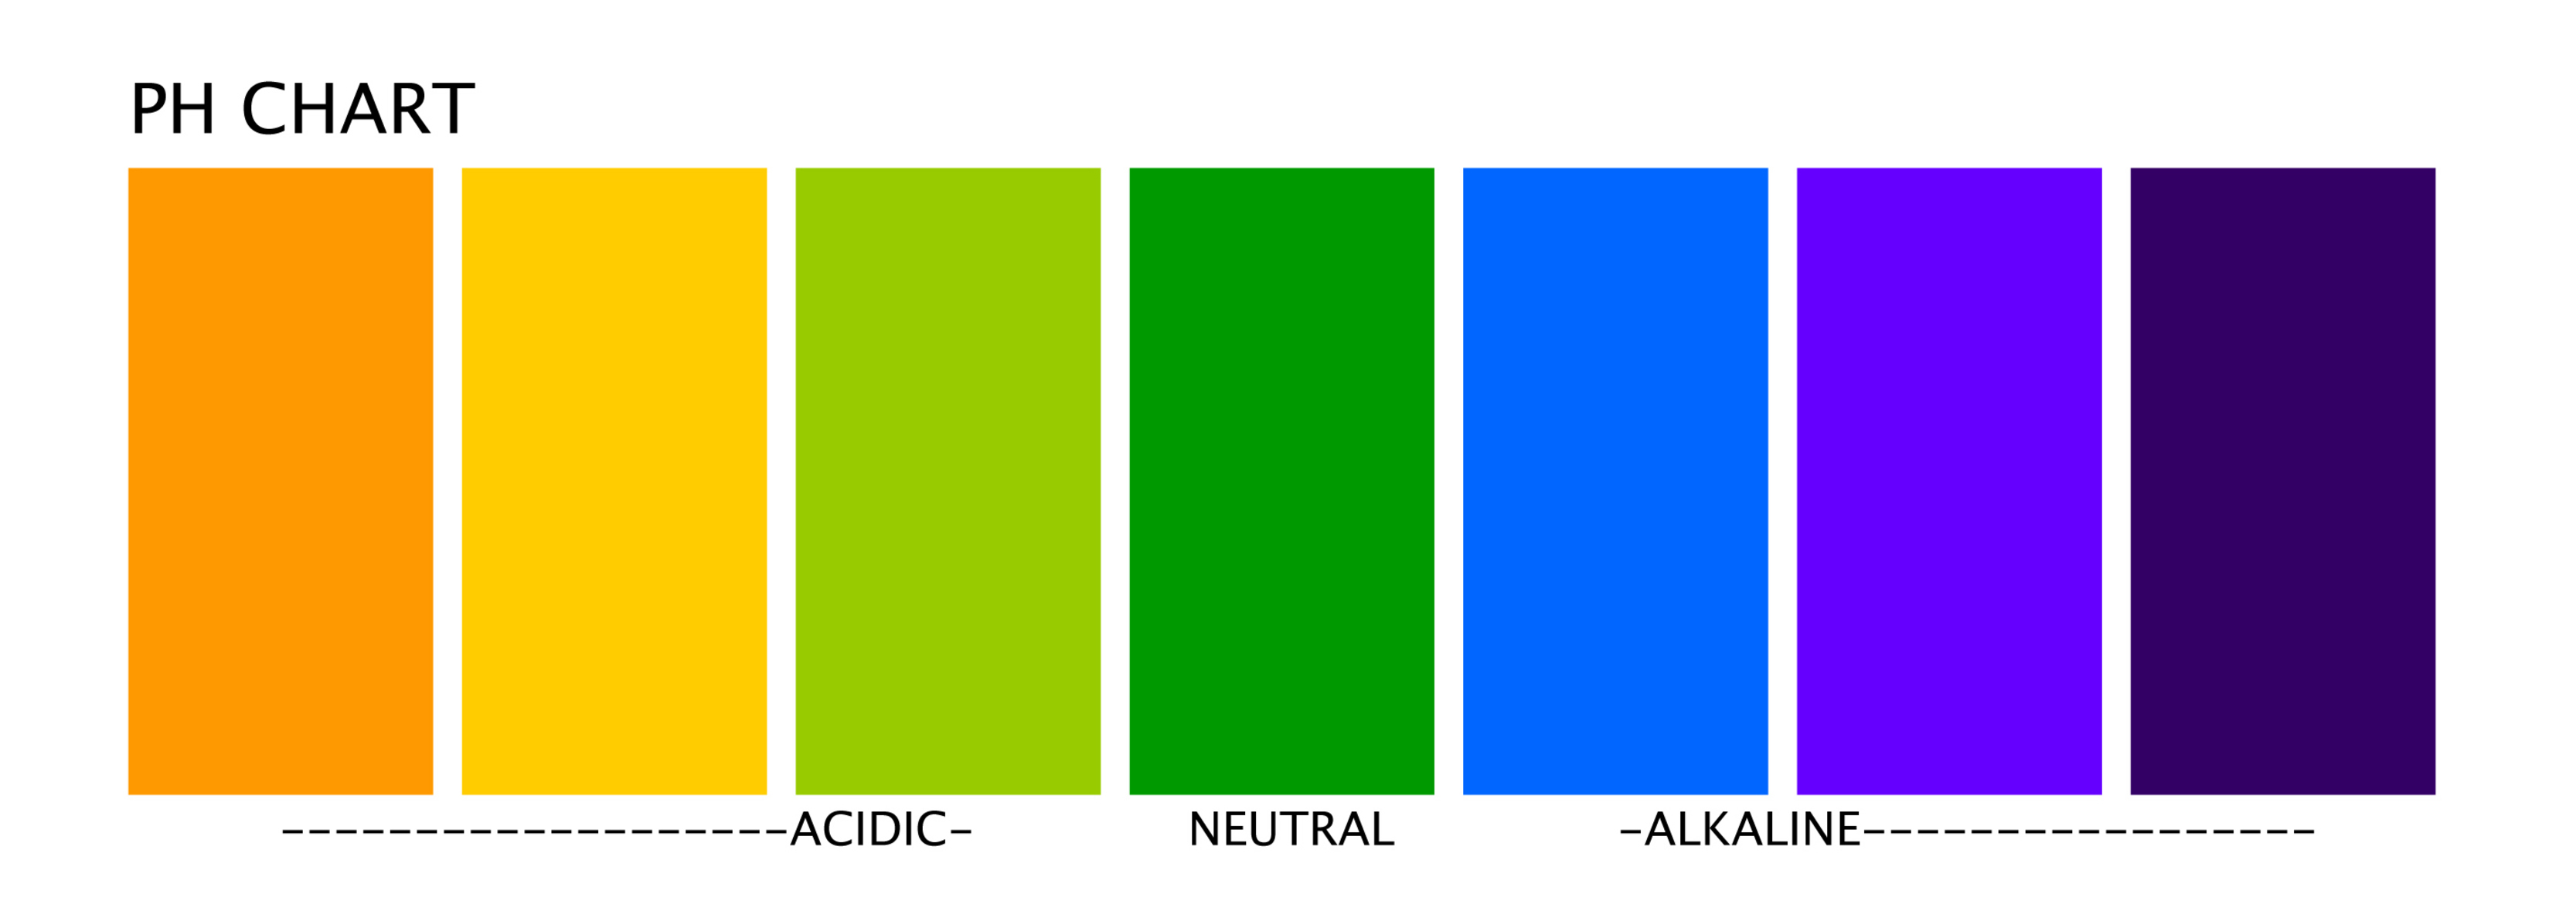 How to change body ph from acid to alkaline